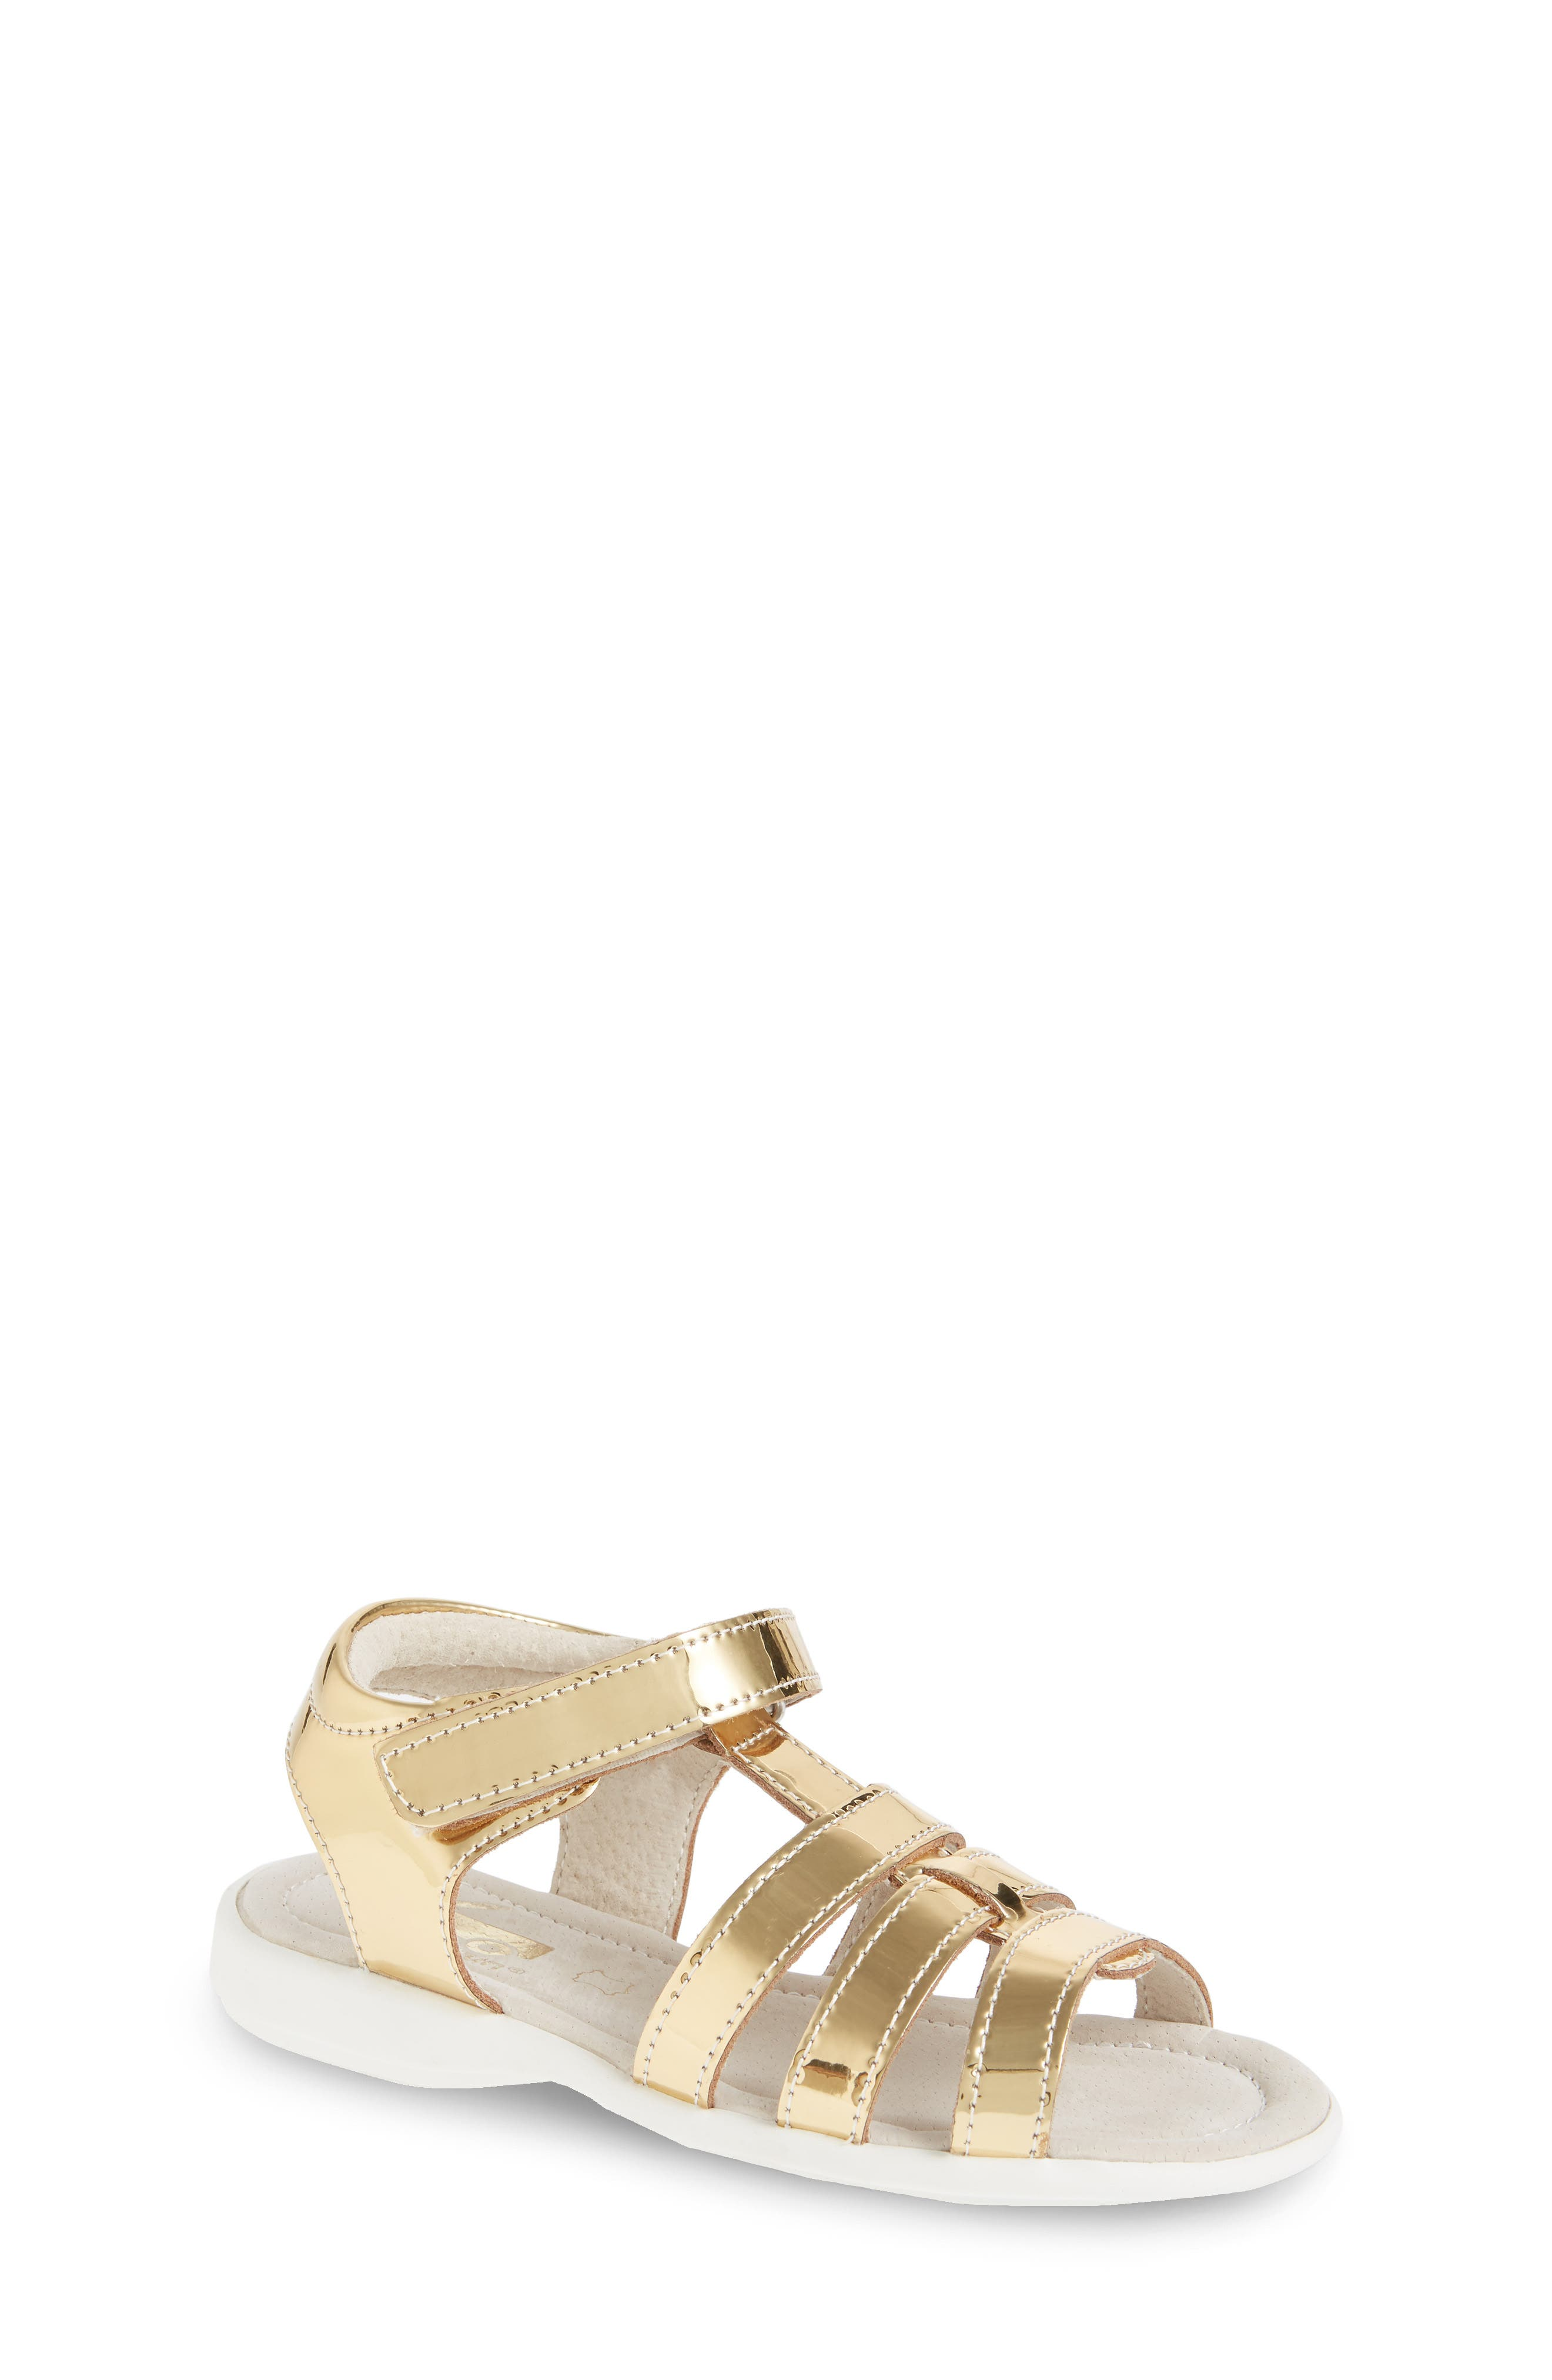 Fe Metallic Fisherman Sandal,                         Main,                         color, Gold